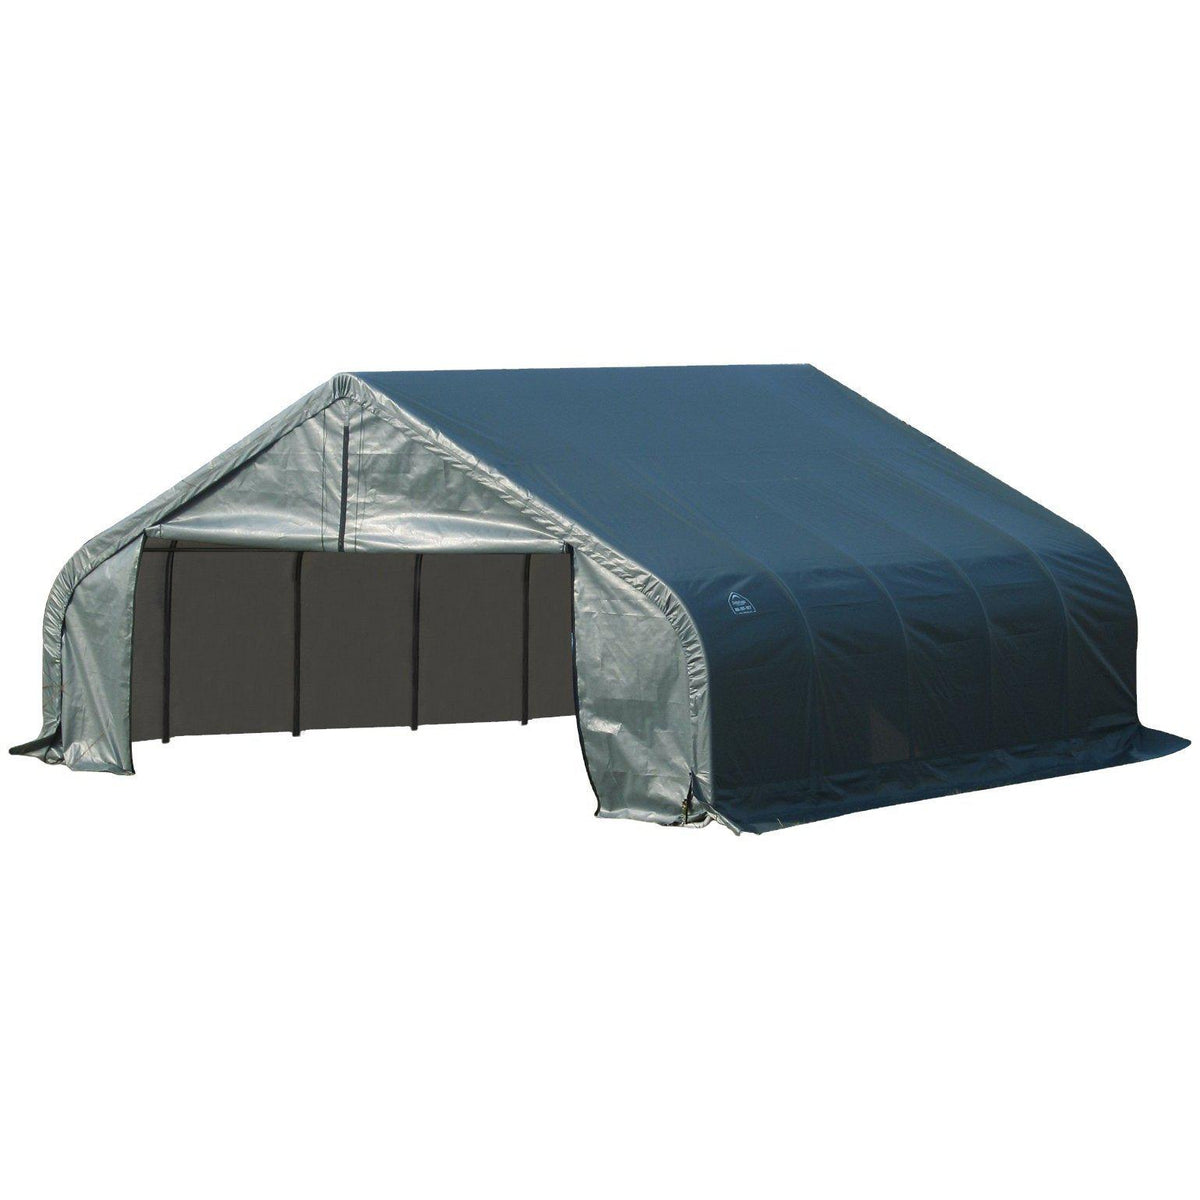 ShelterLogic 80044 Green 18'x20'x10' Peak Style Shelter